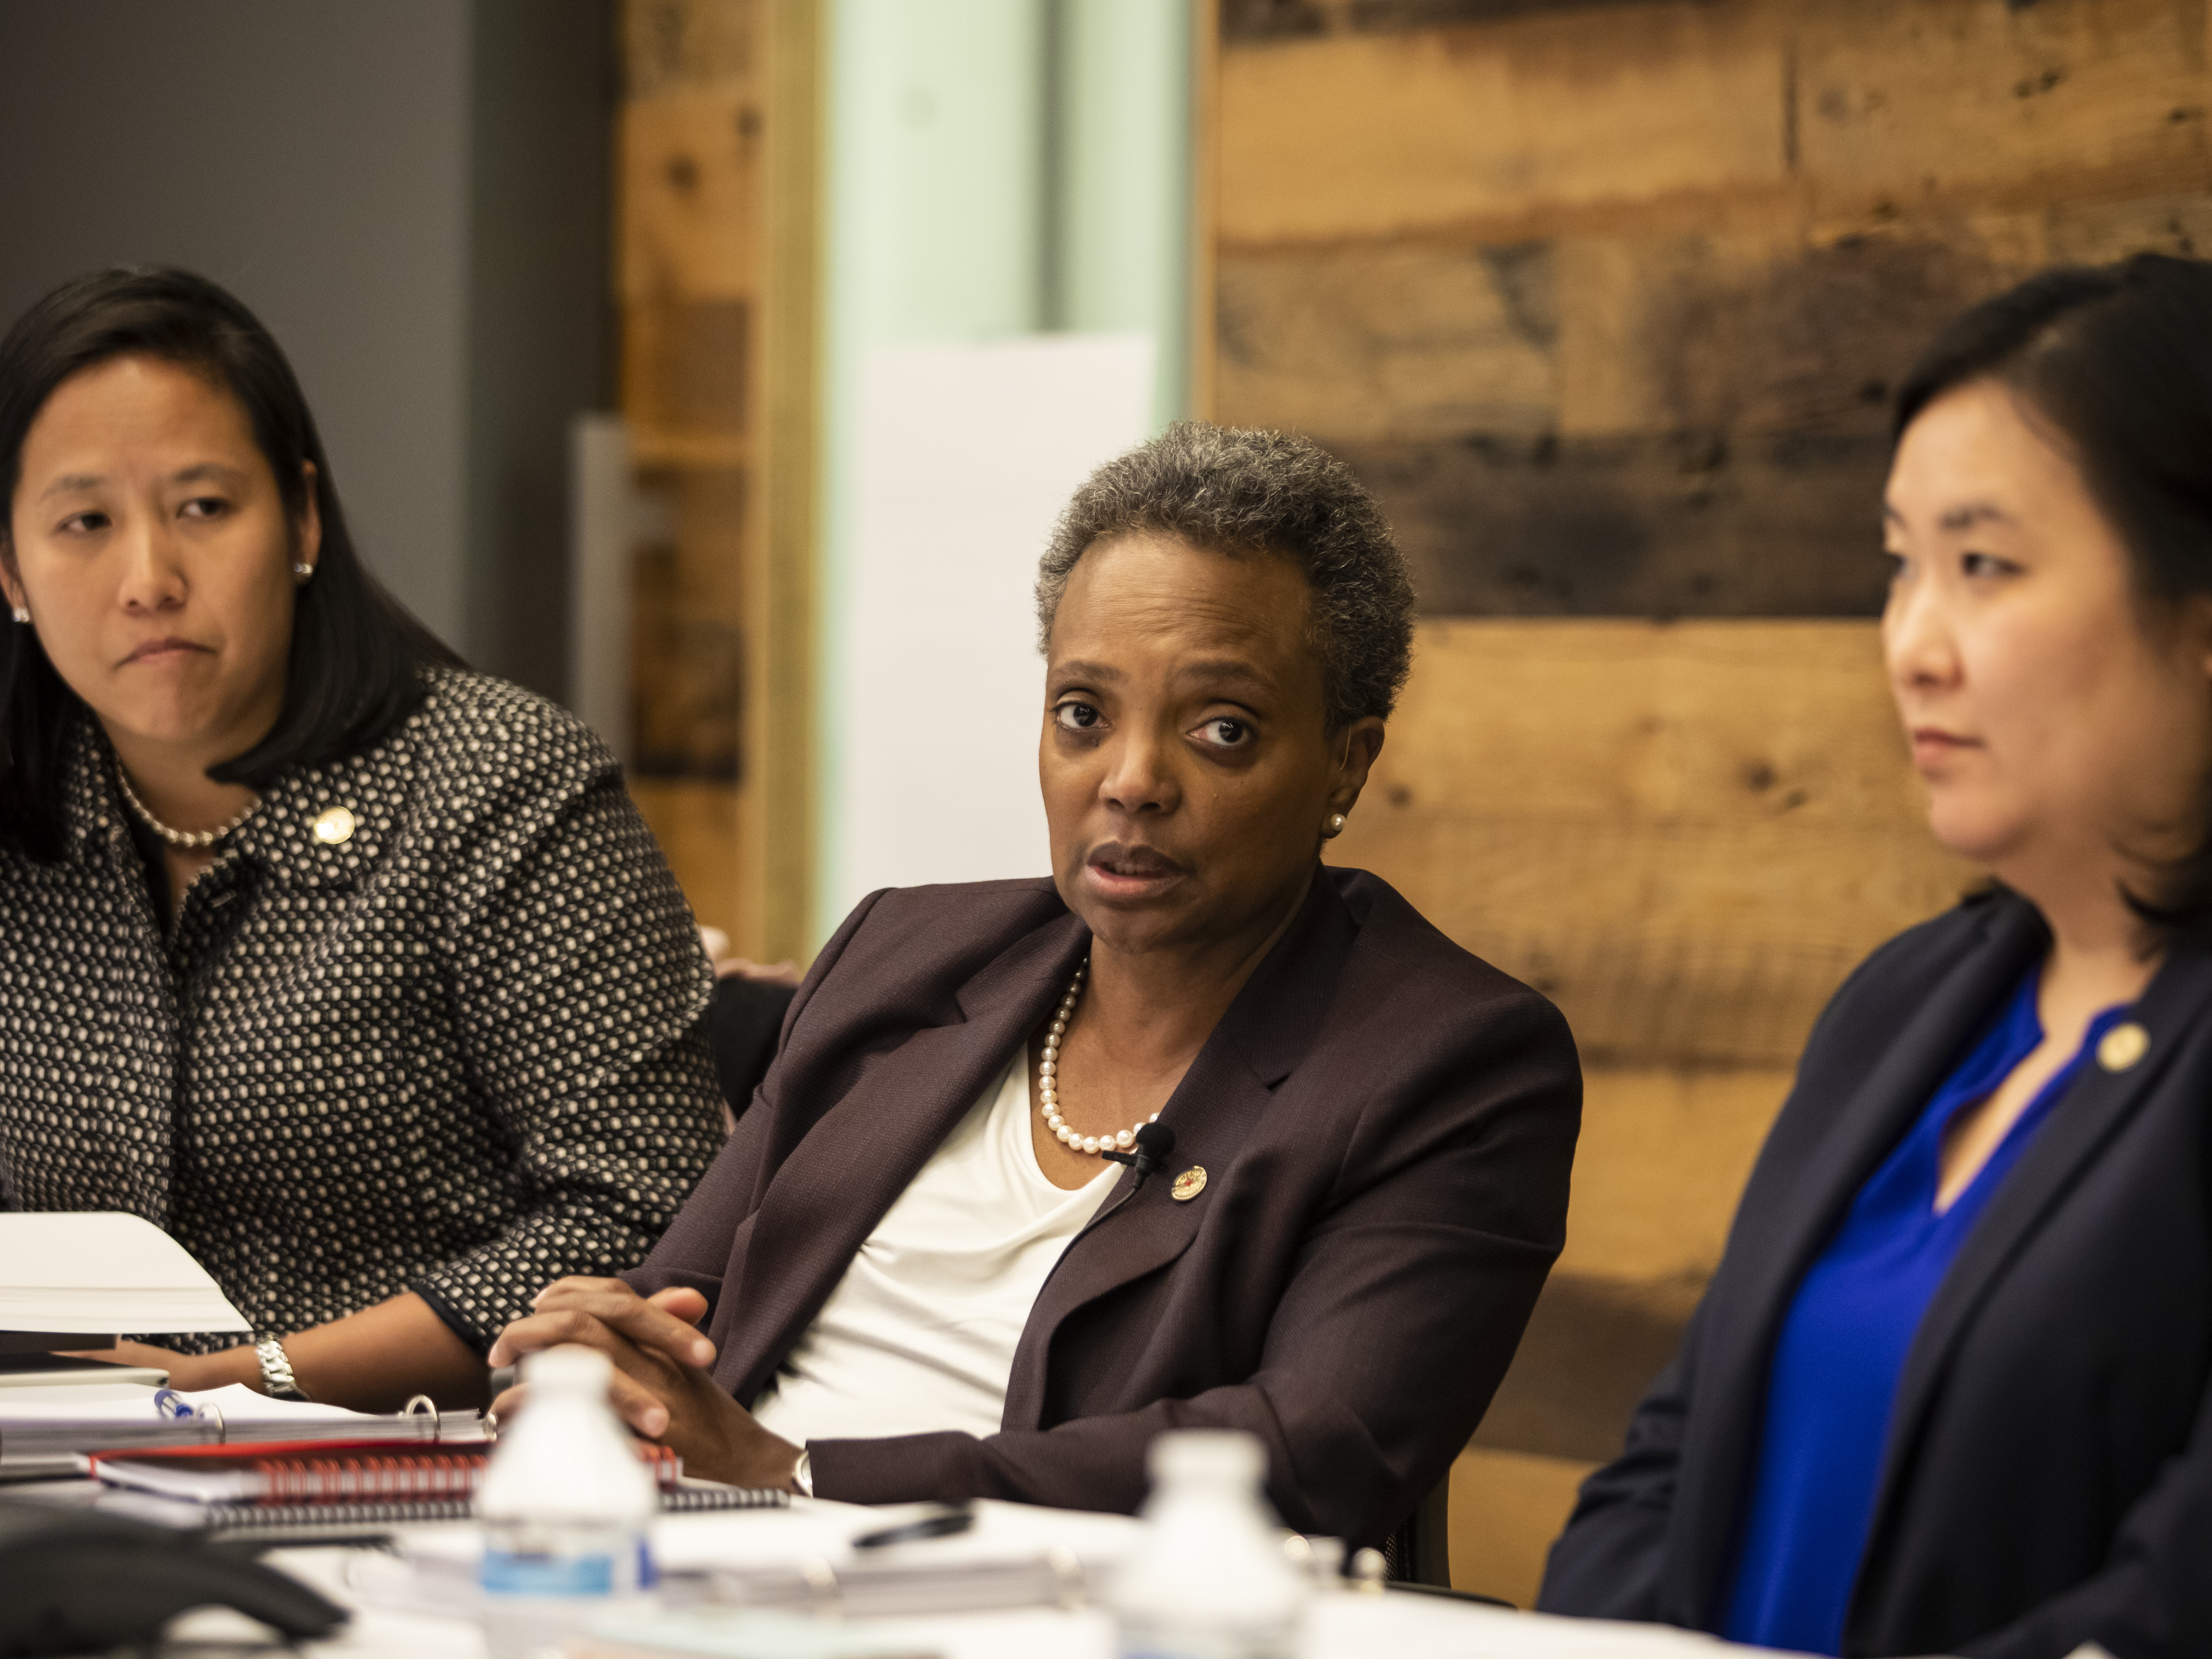 (From left) Budget Director Susie Park, Mayor Lori Lightfoot and Chief Financial Officer Jennie Huang Bennett sit down for an interview with the Chicago Sun-Times Editorial Board, hours after Lightfoot delivered her first budget address to the Chicago City Council at City Hall, Wednesday afternoon, Oct. 23, 2019. | Ashlee Rezin Garcia/Sun-Times